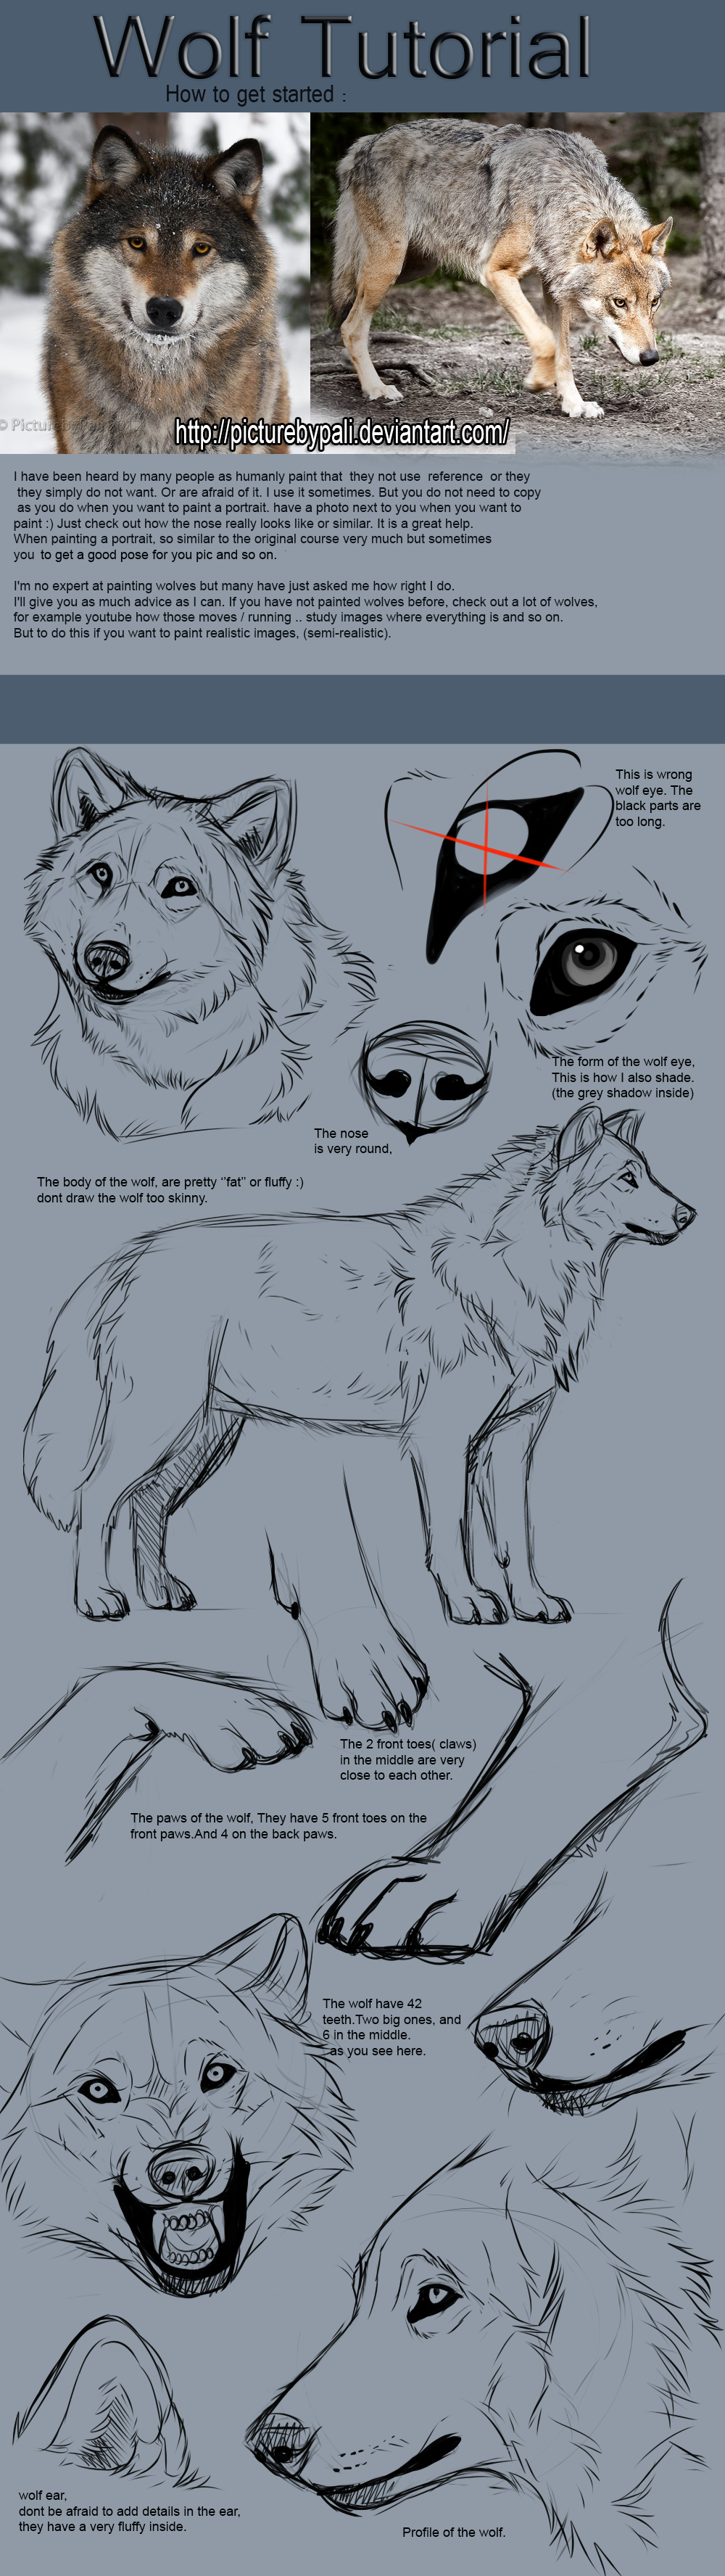 Wolf tutorial by themysticwolf on deviantart much need much want wolf tutorial by themysticwolf on deviantart much need much want ccuart Image collections